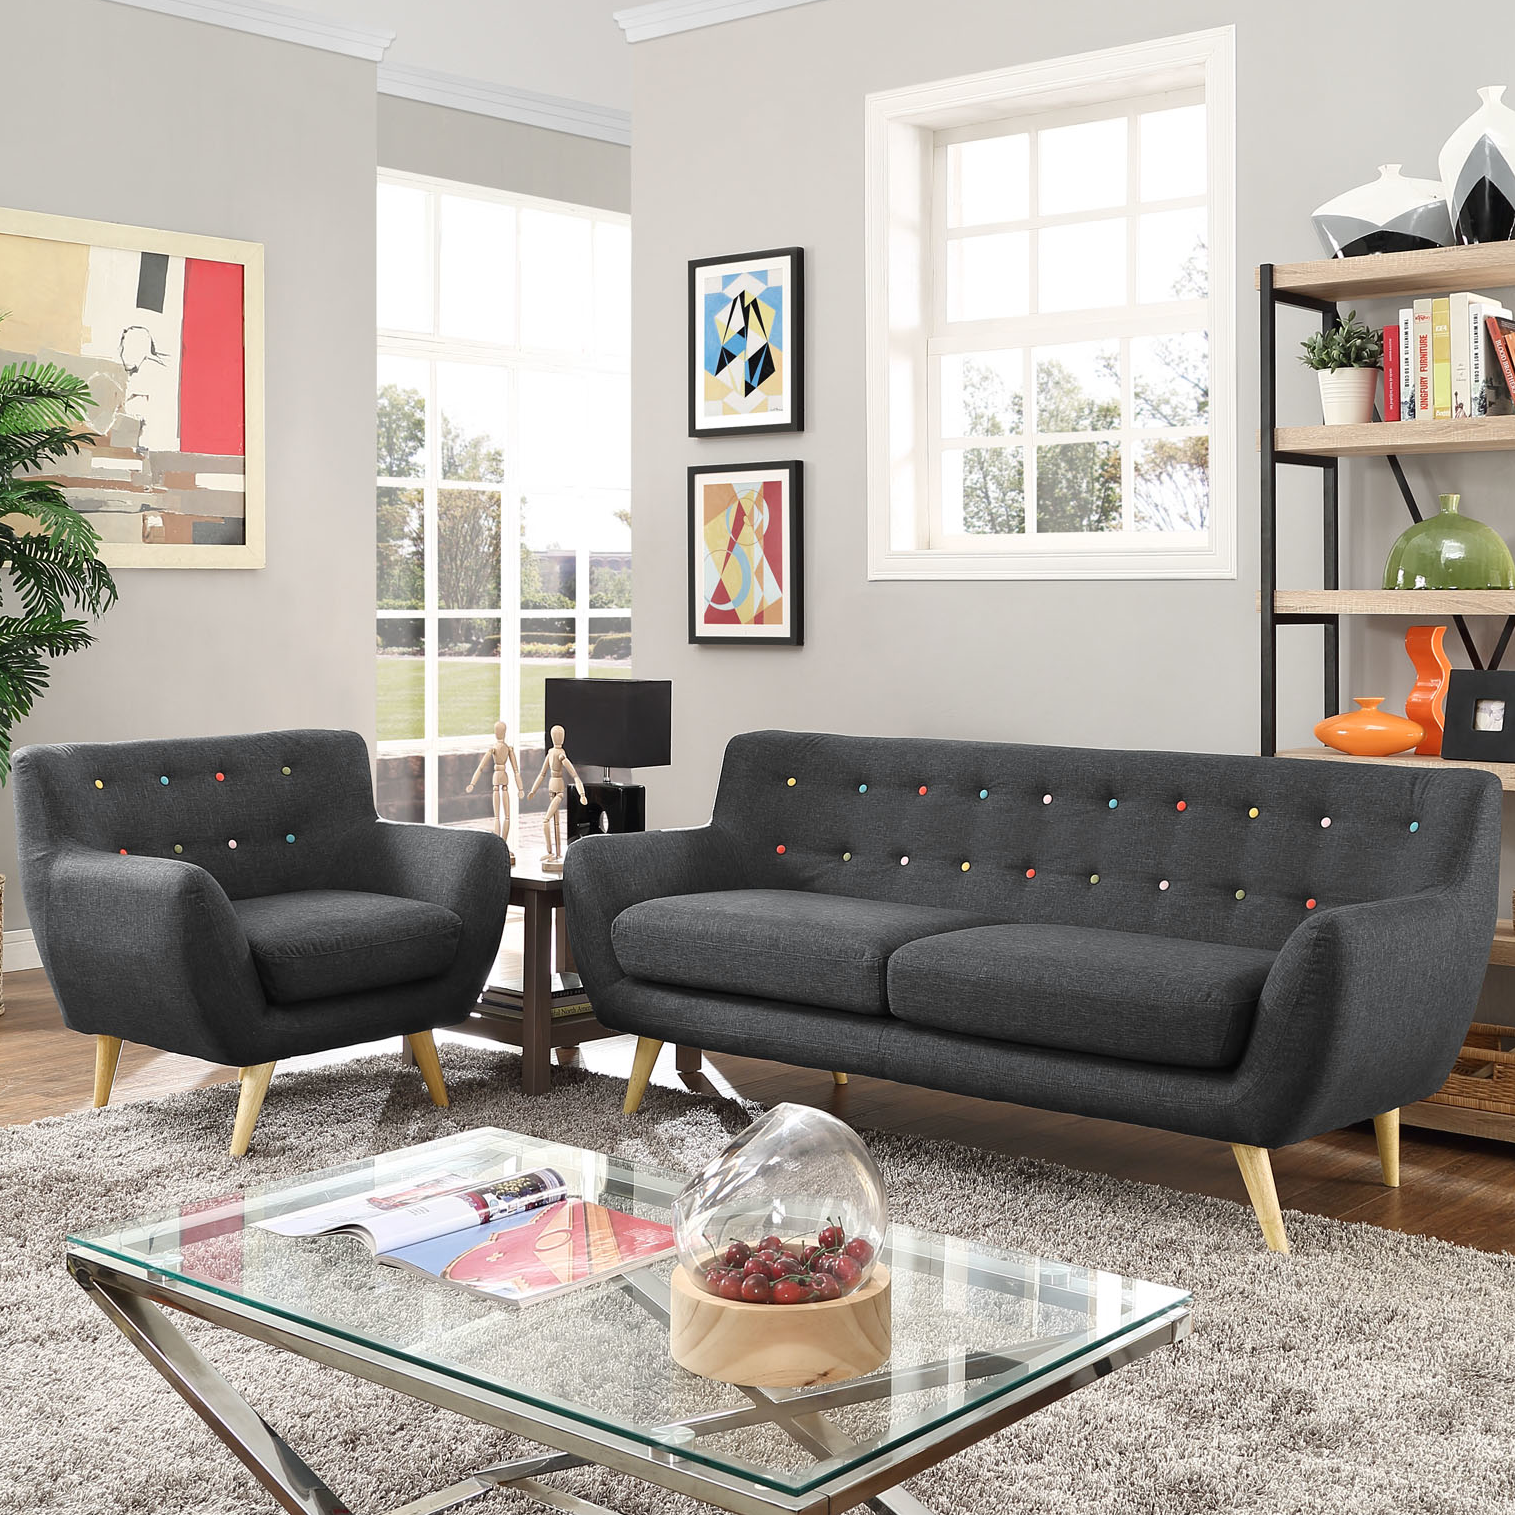 Buy modern design furniture for living   room to create an attractive area